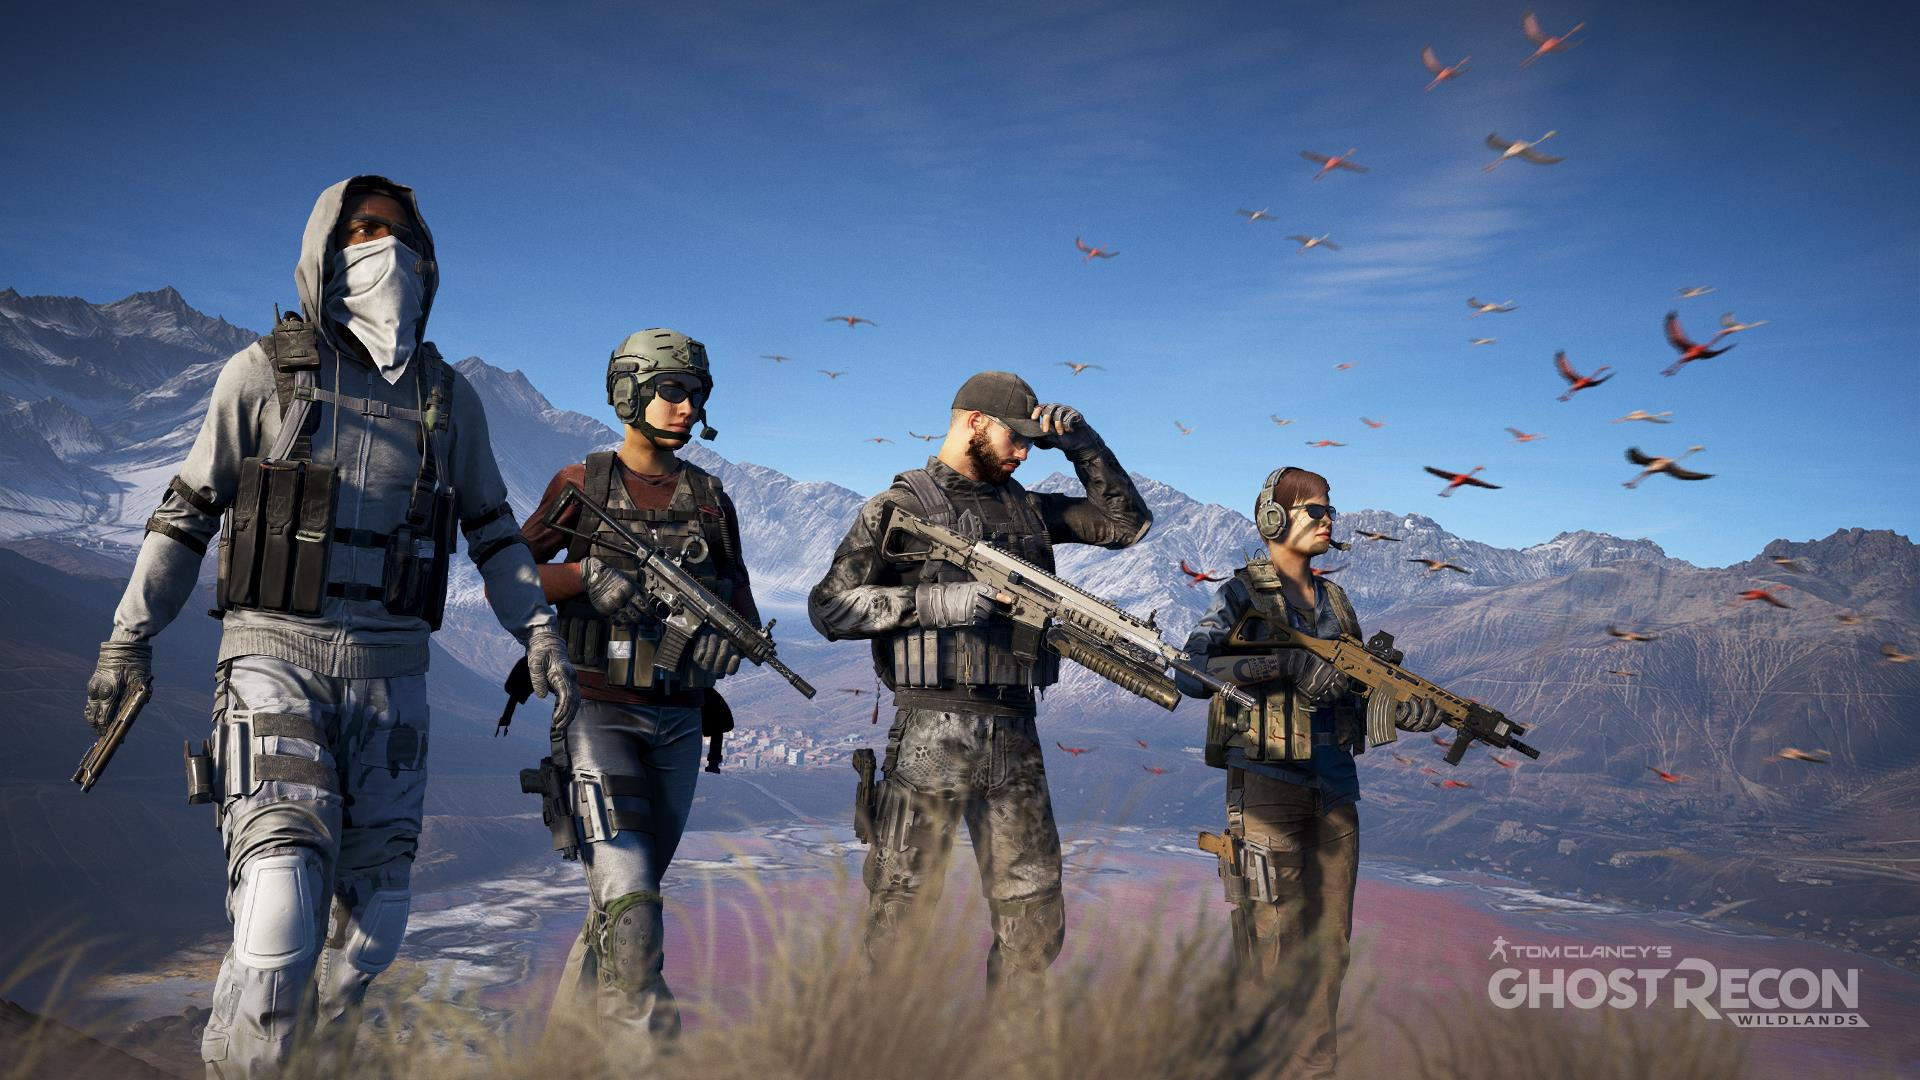 Ghost Recon: Wildlands live-action trailer has the Ghosts